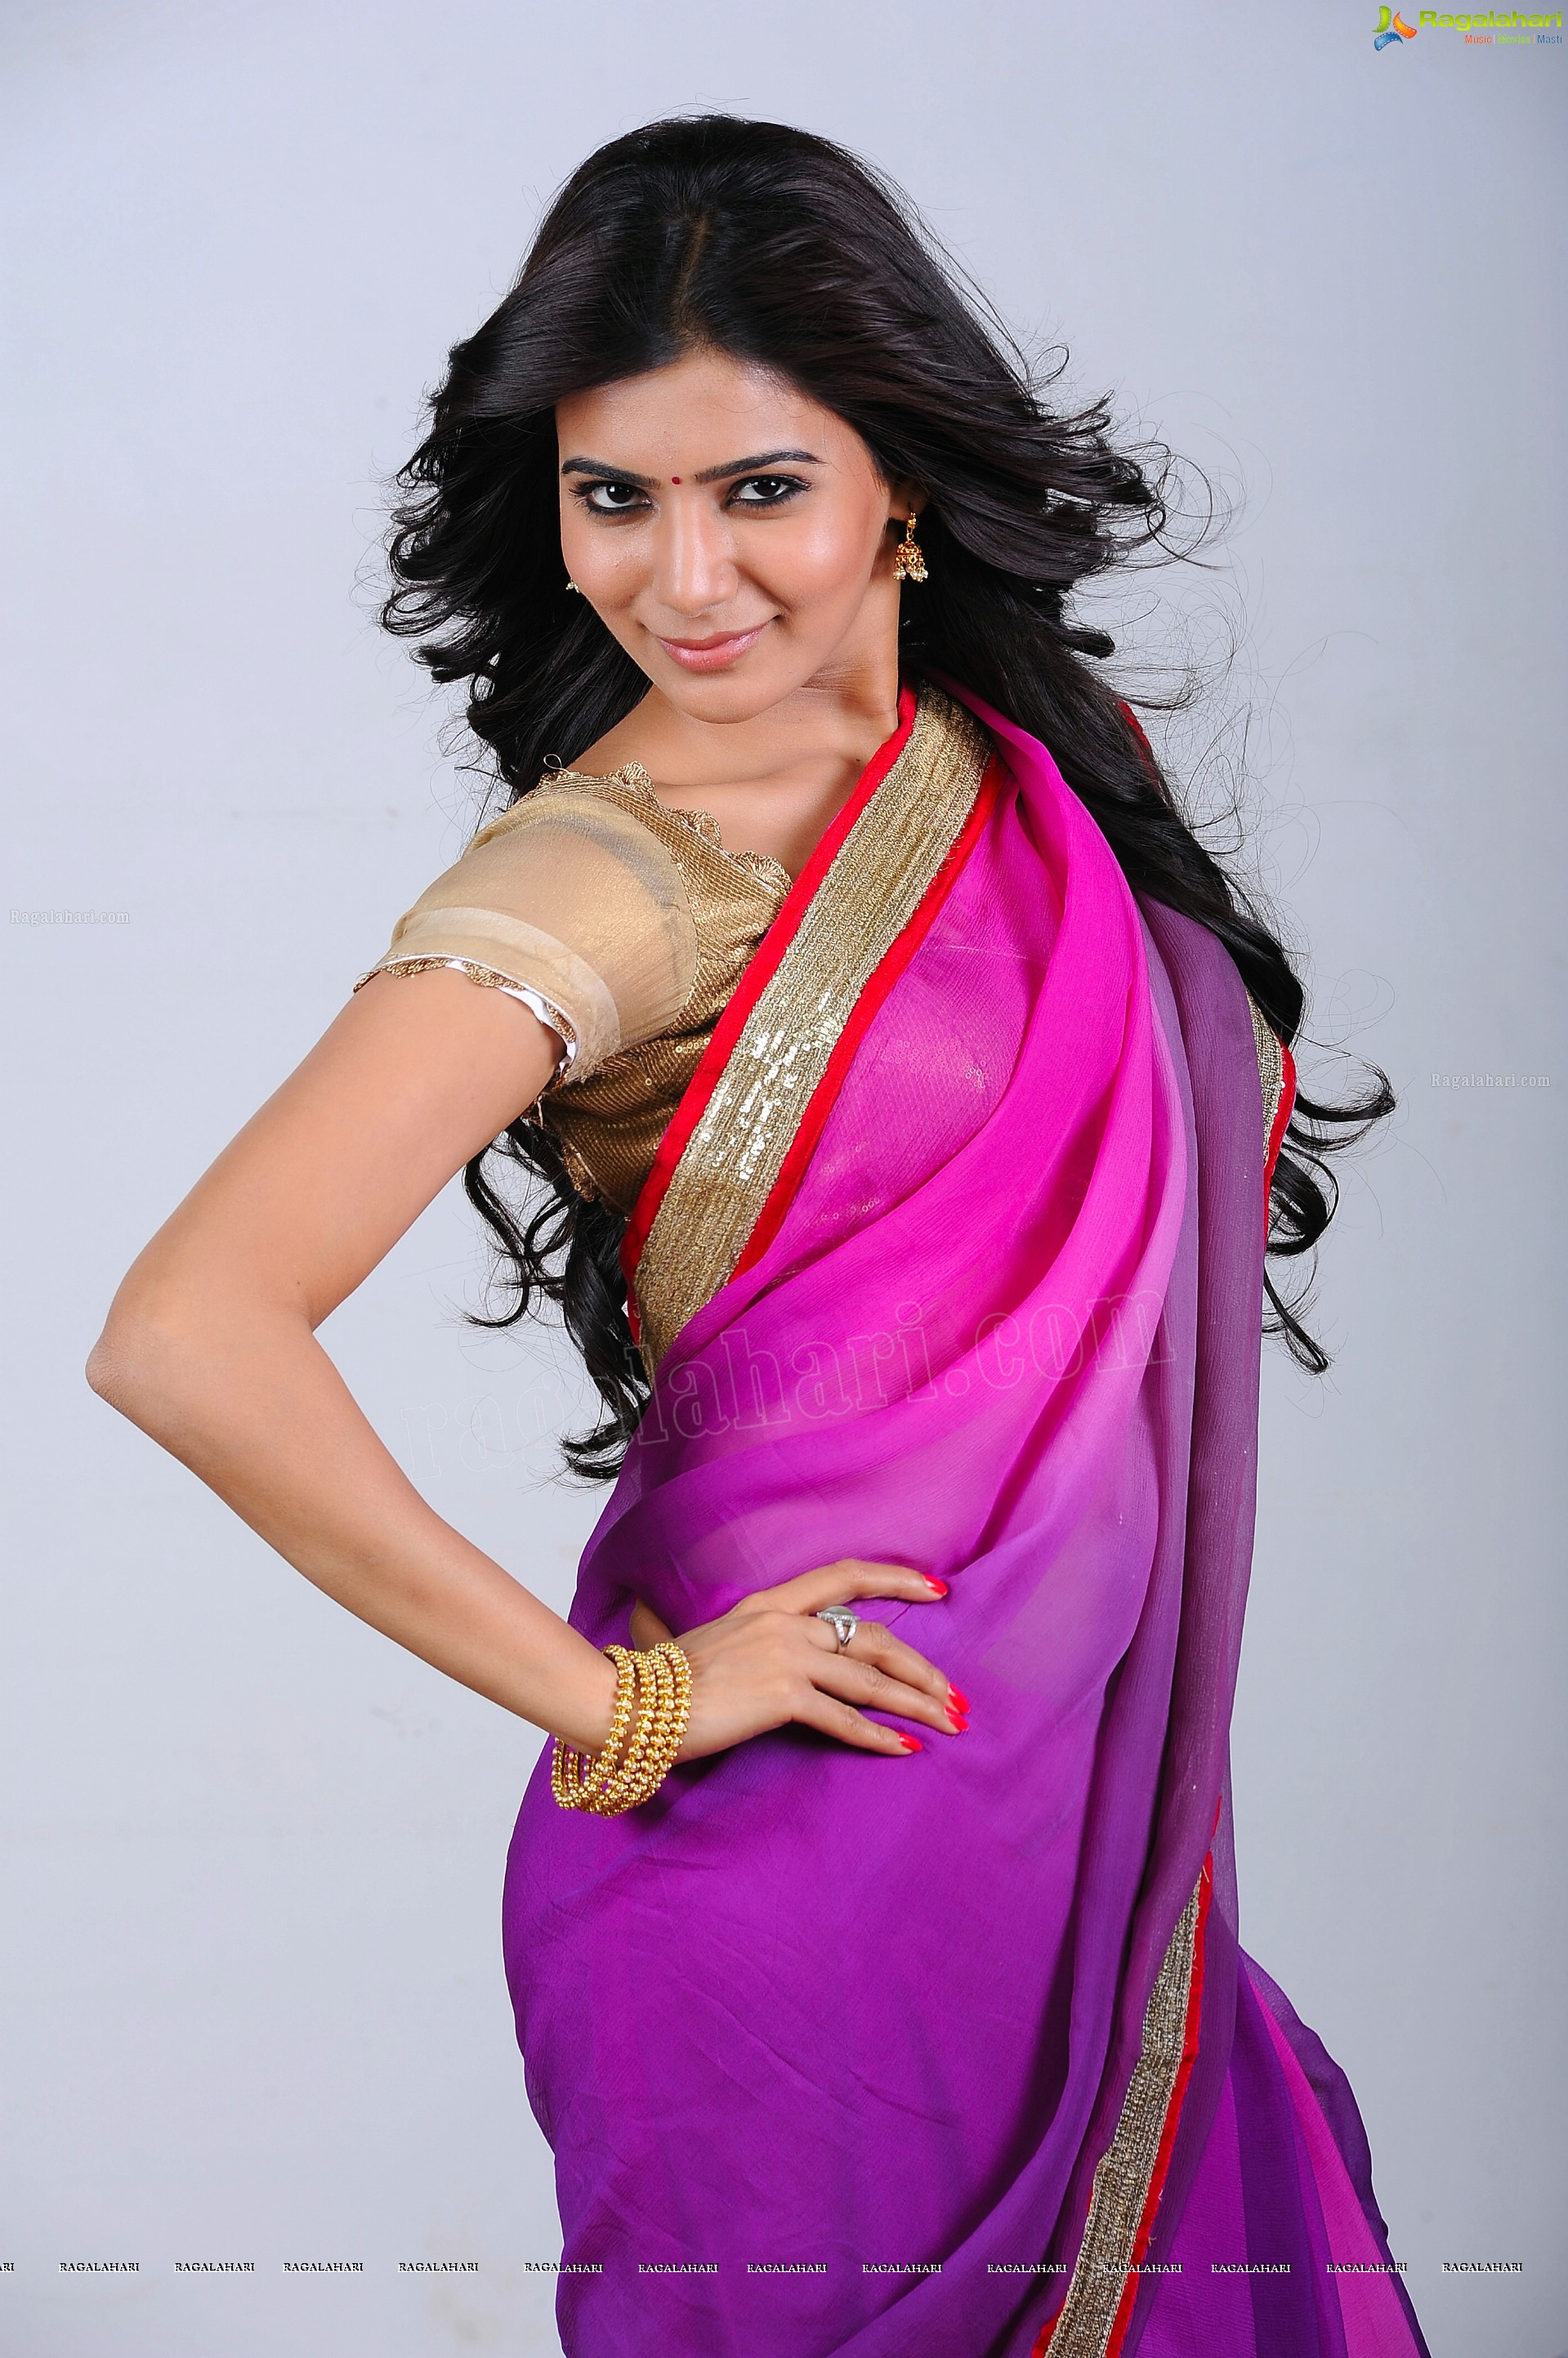 Samantha in Pink Saree - HD Gallery